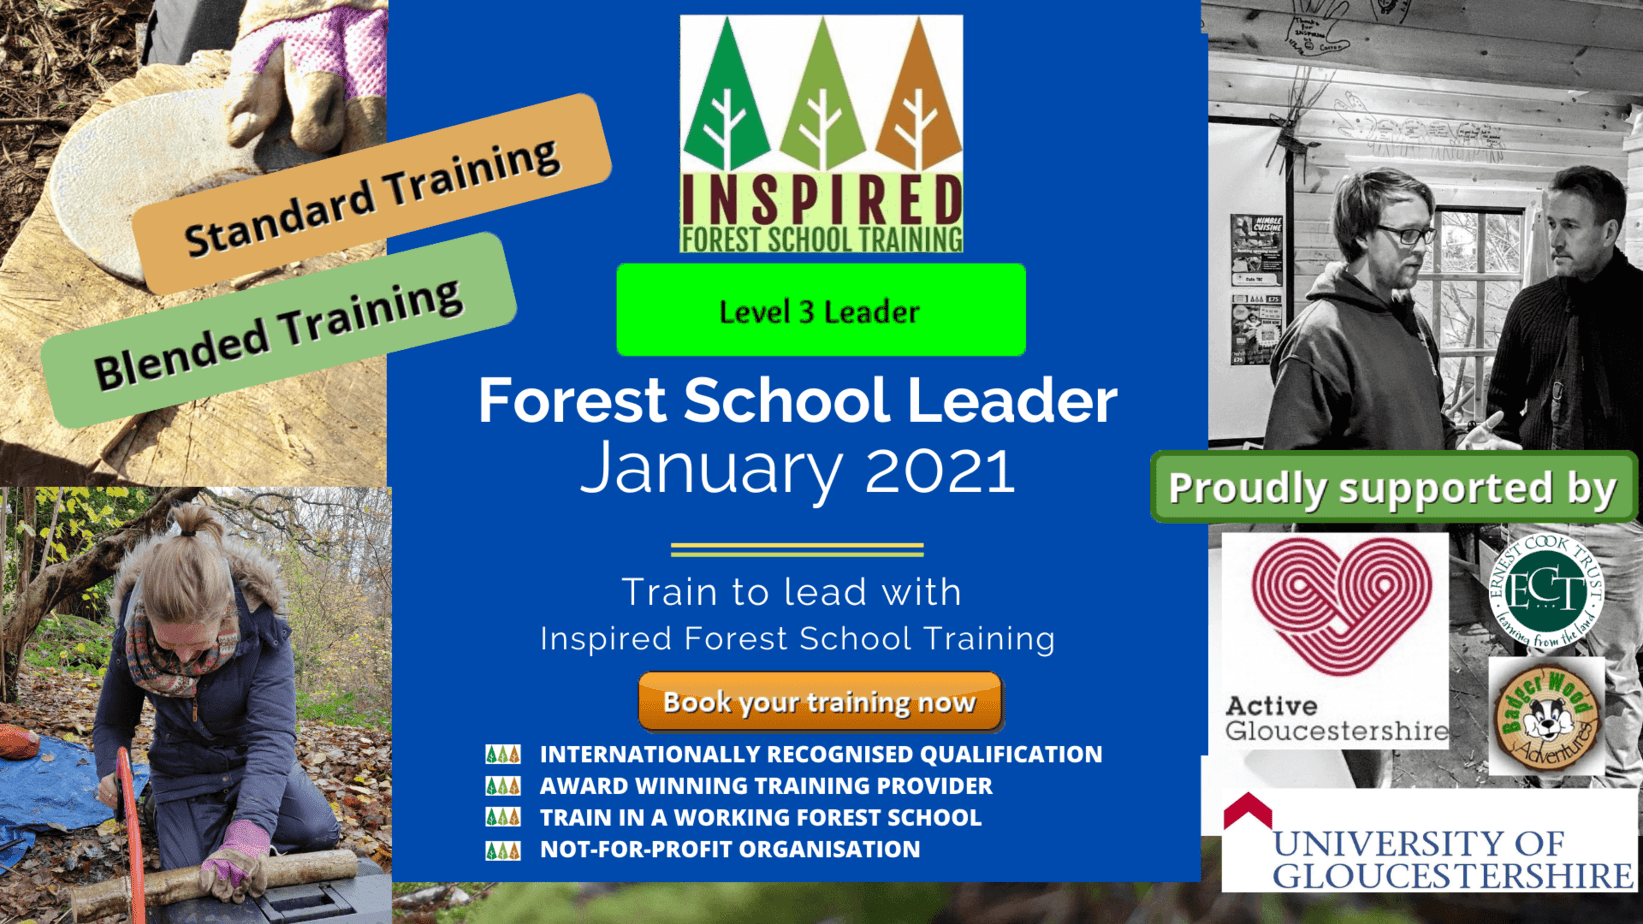 Forest-School-Leader-training-January-2021 Upcoming courses